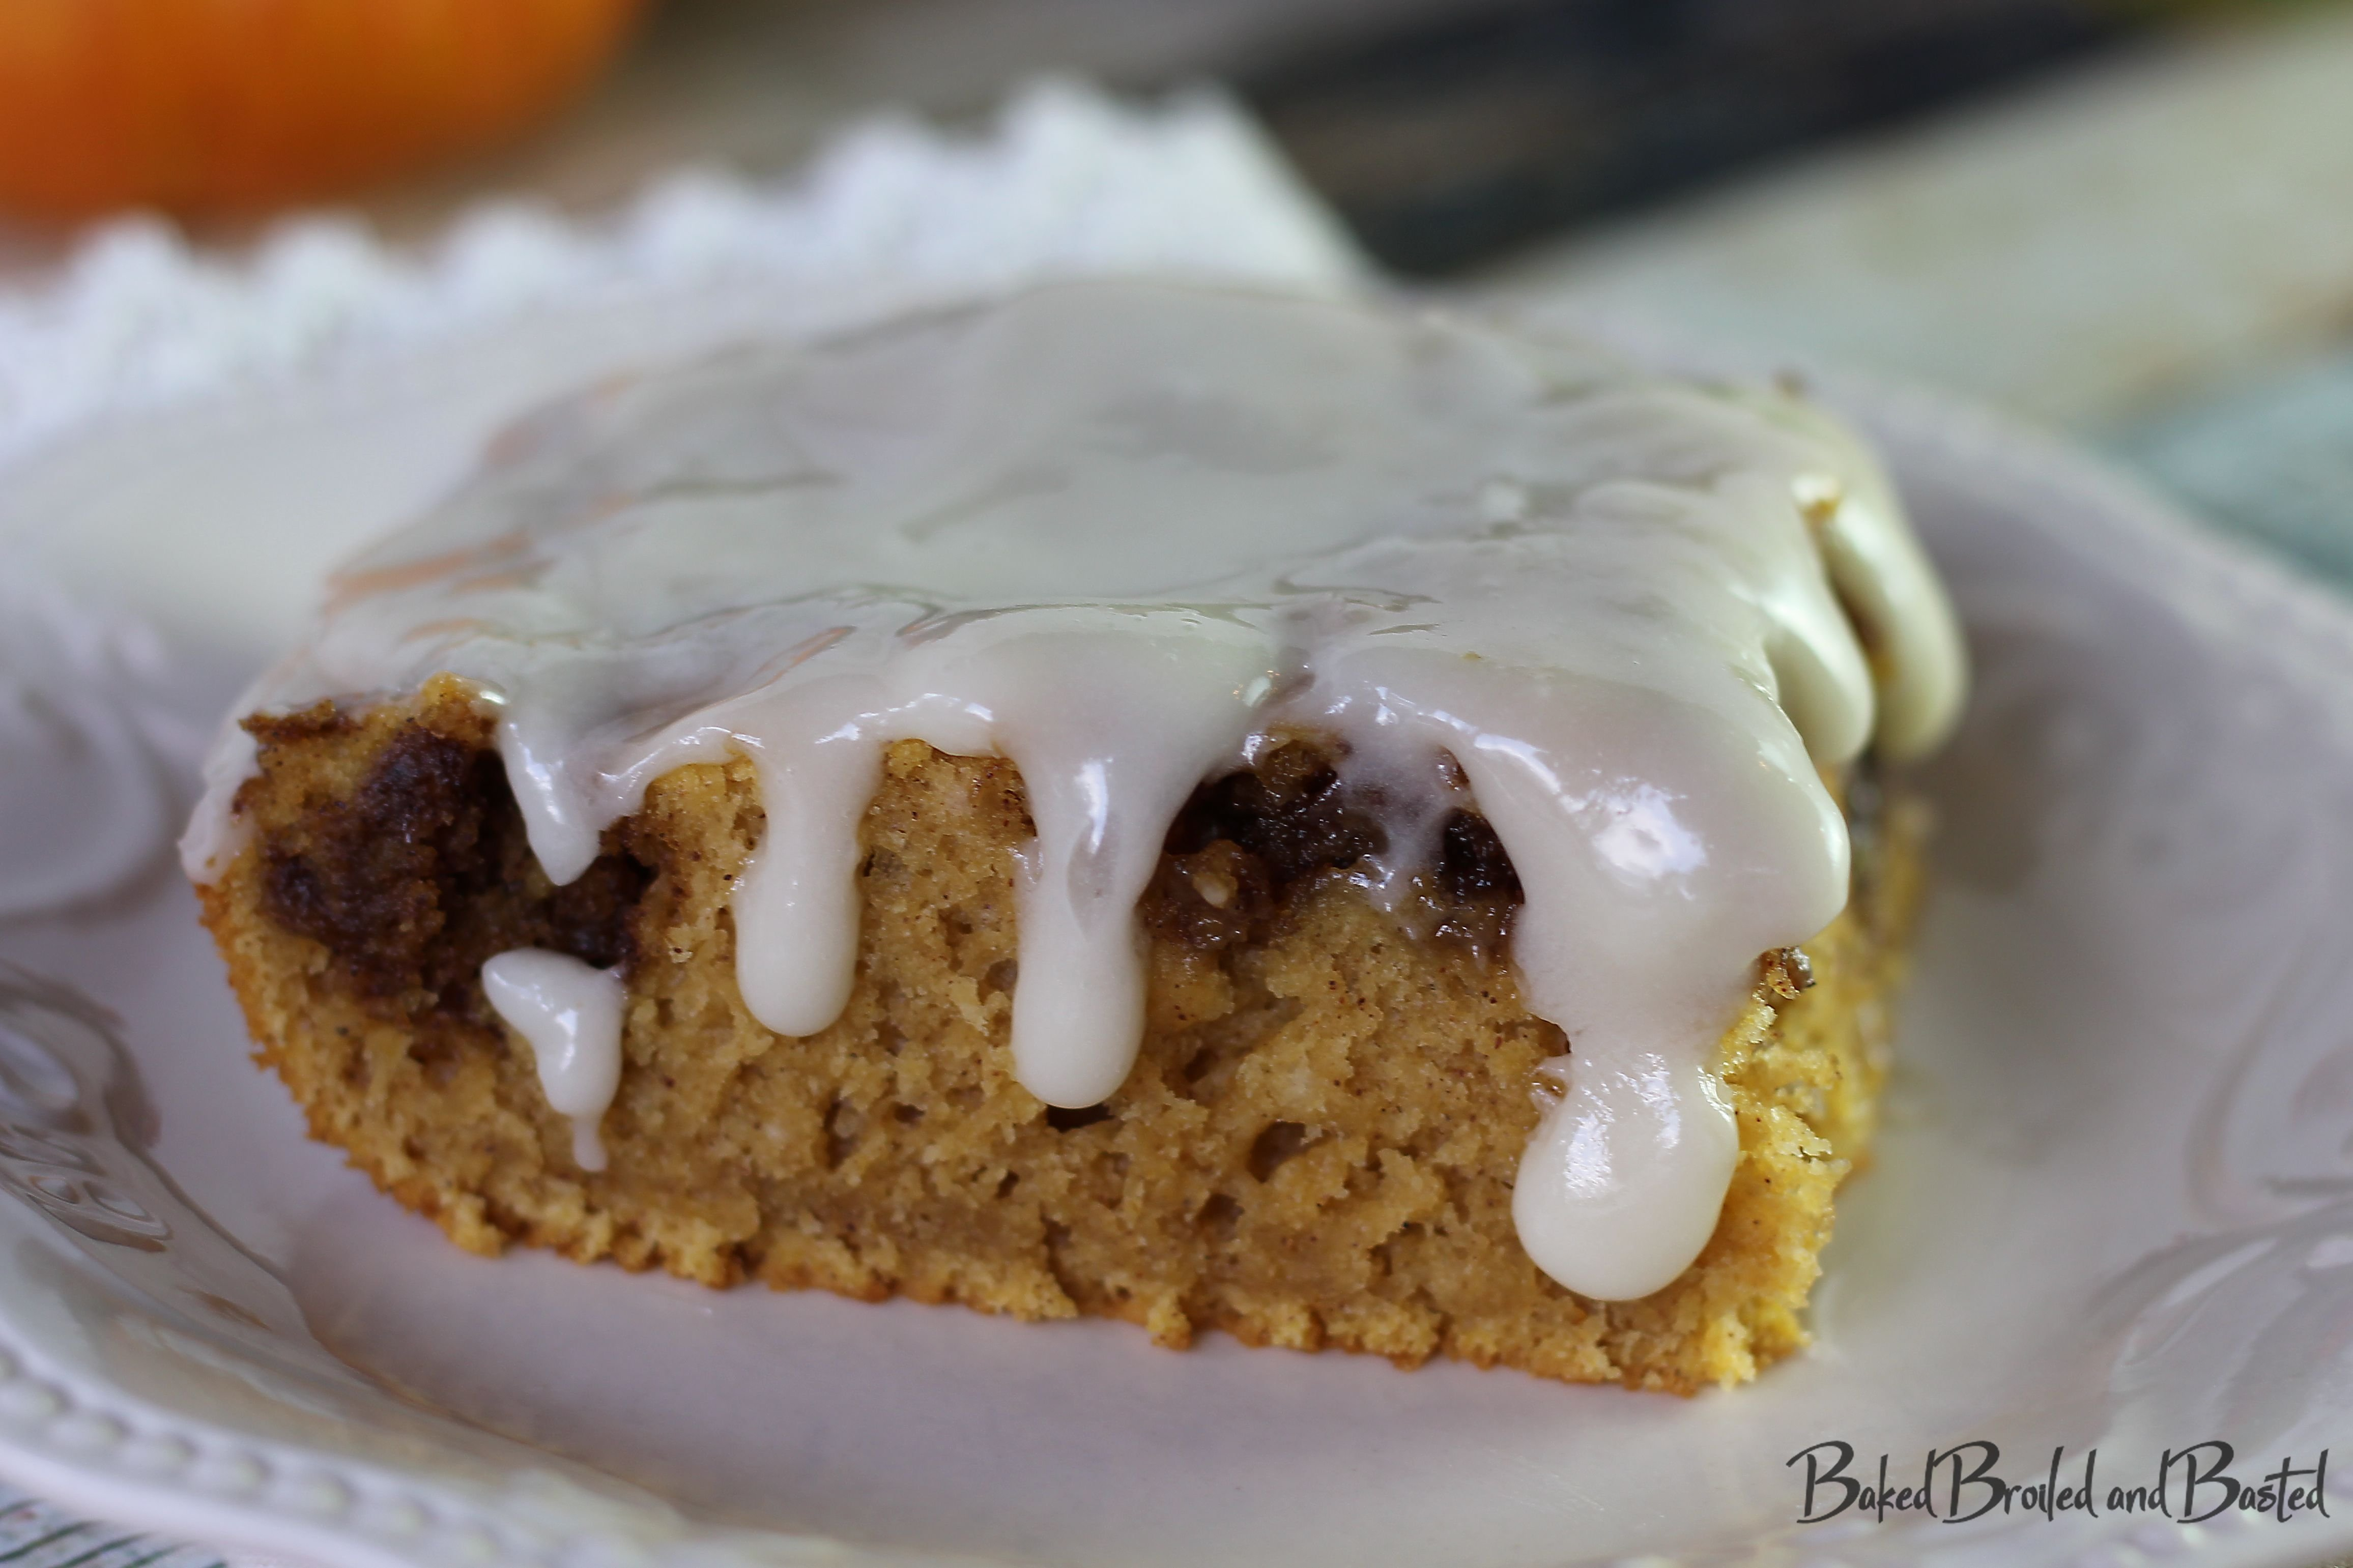 Pumpkin Spiced Cinnamon Roll Cake with Cream Cheese Glaze